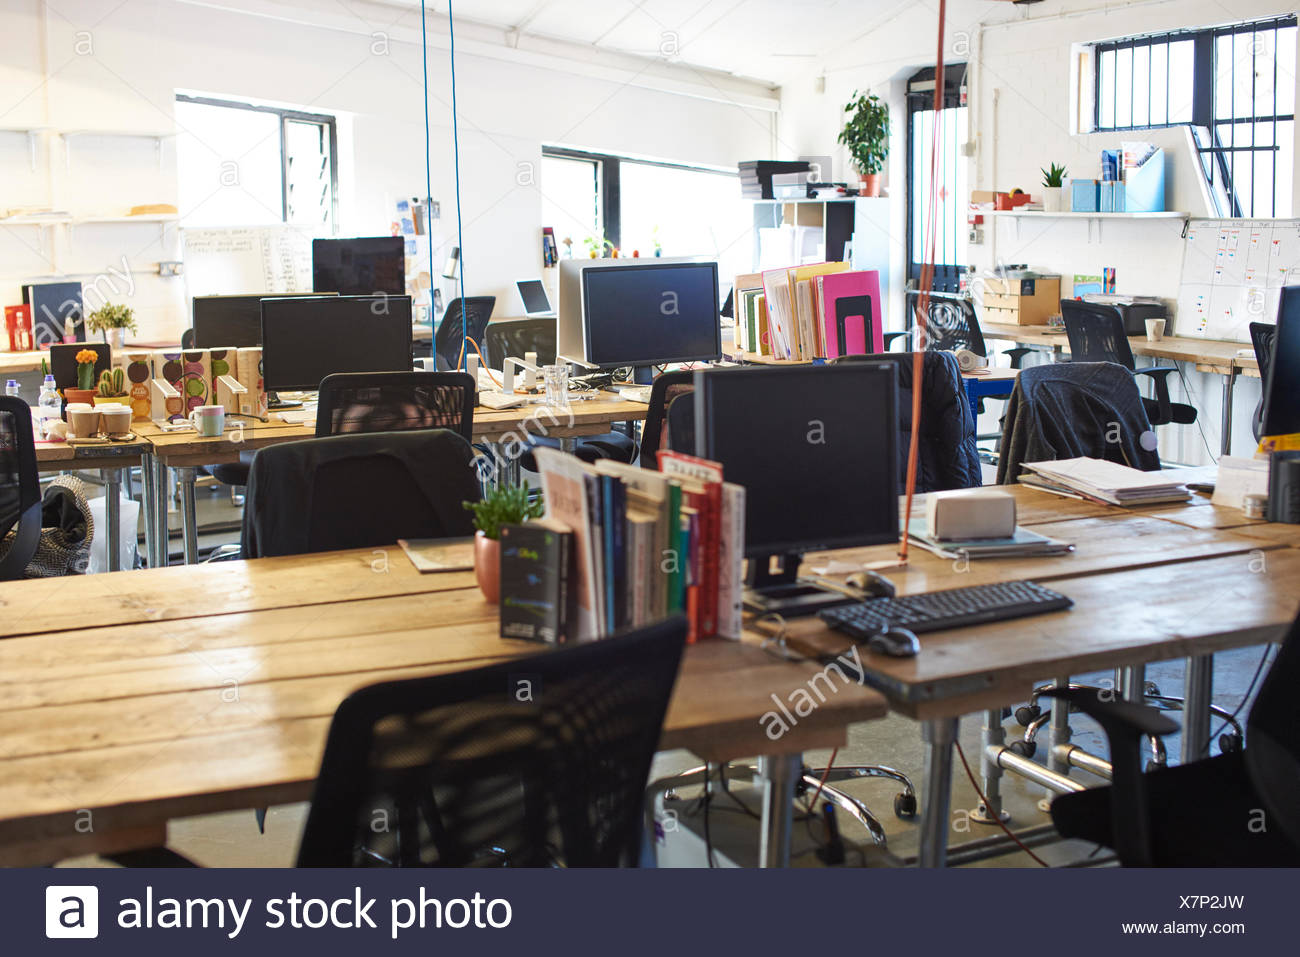 Interior Of Modern Design Office With No People - Stock Image